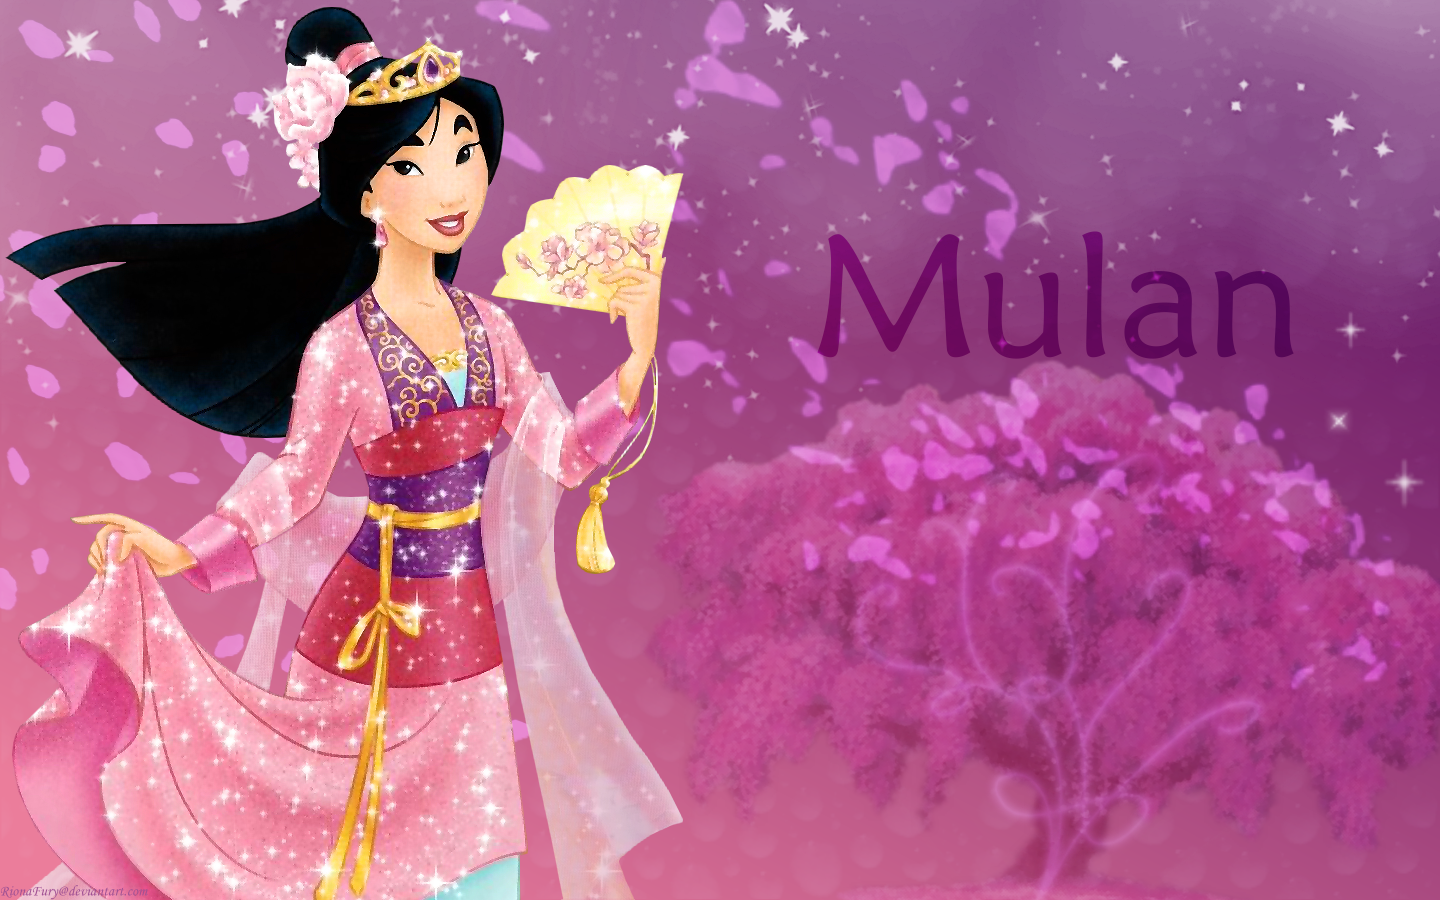 Mulan   Disney Princess Mulan Wallpaper 33894127 1440x900